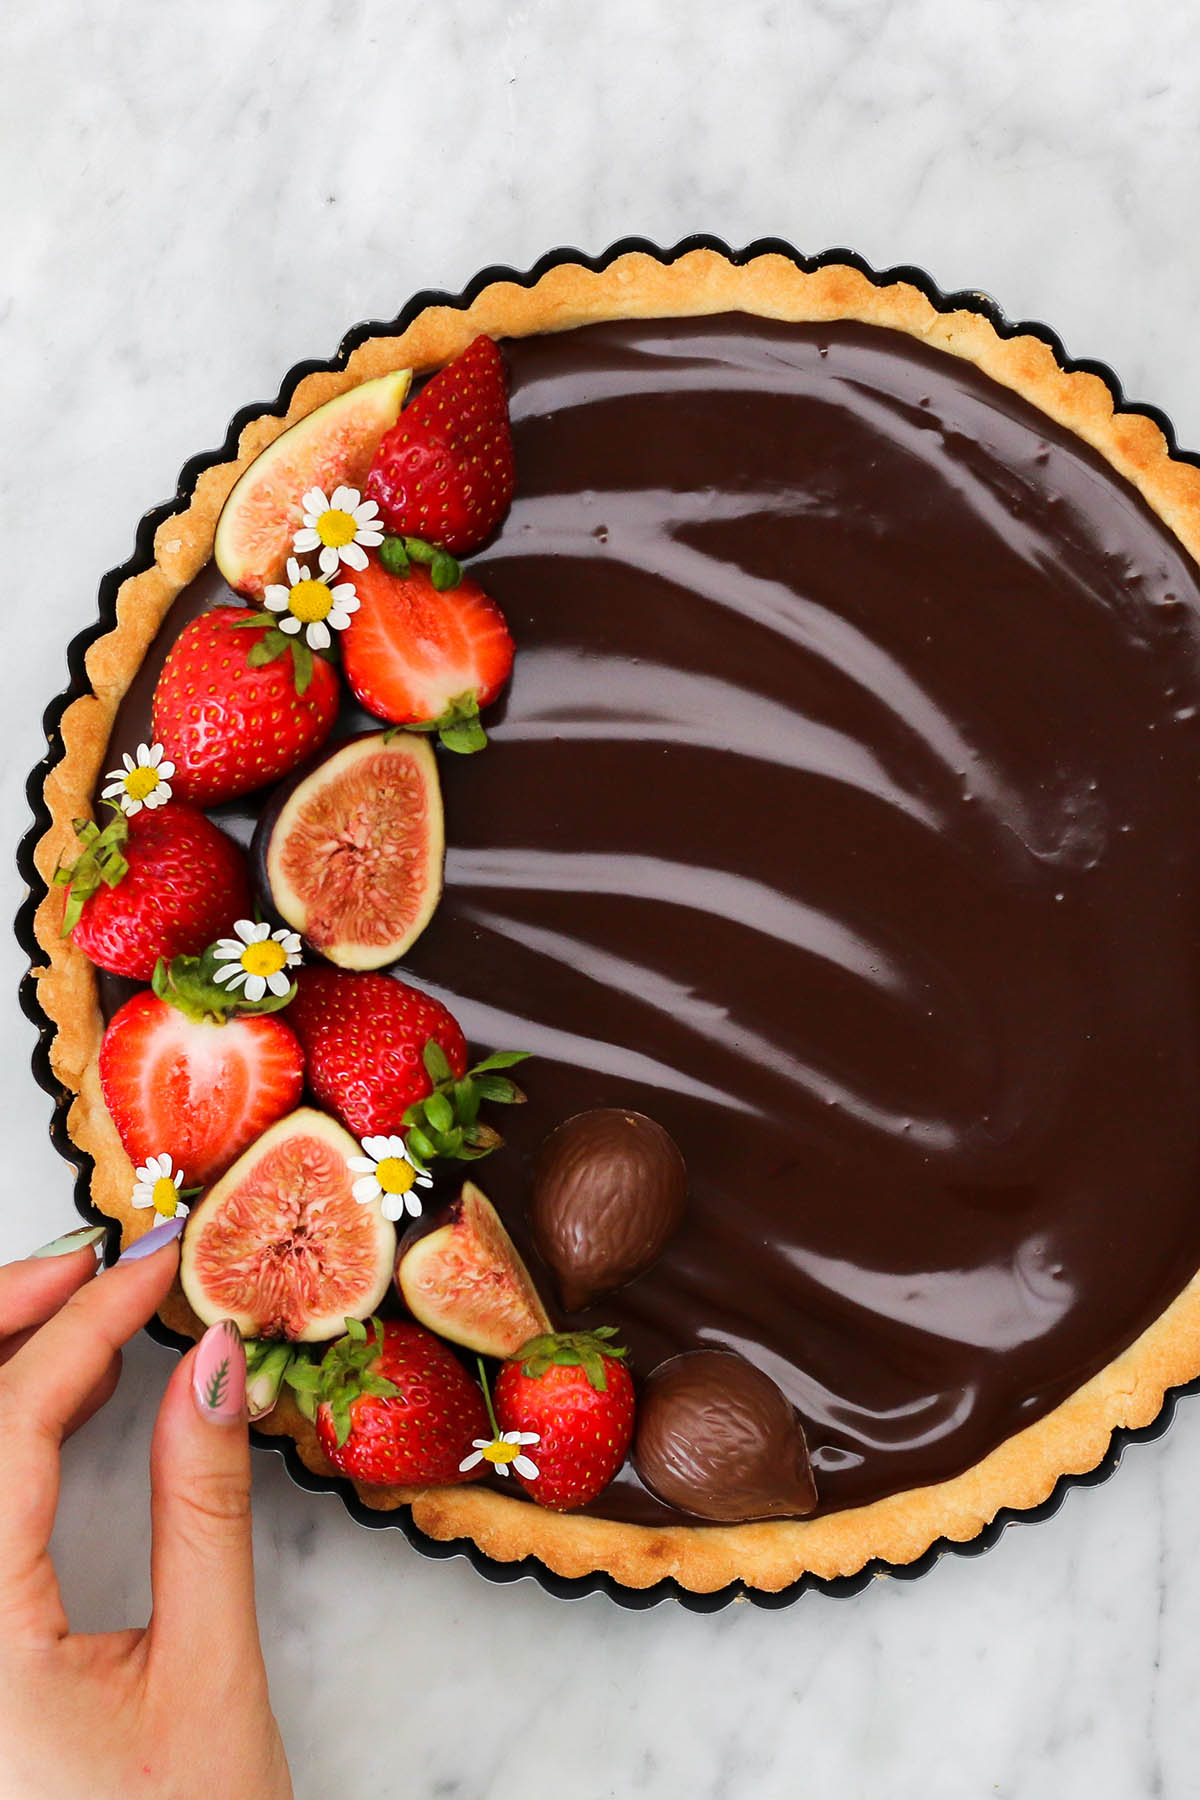 A hand placing fruit on top of a chocolate ganache tart.